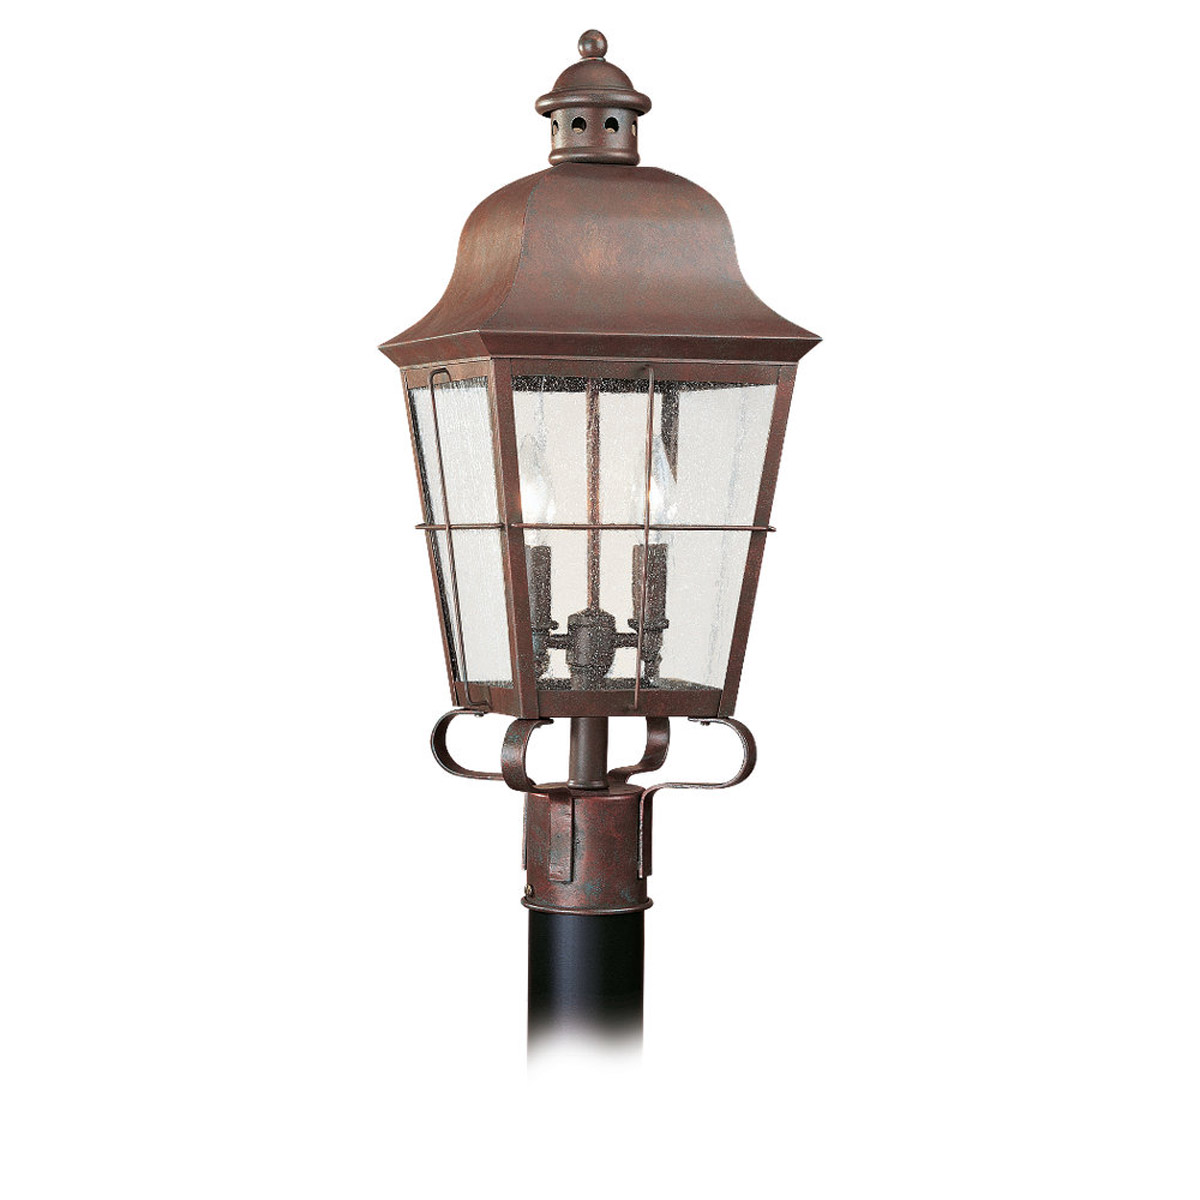 Sea Gull Lighting Chatham 2 Light Outdoor Post Lantern in Weathered Copper 8262-44 photo